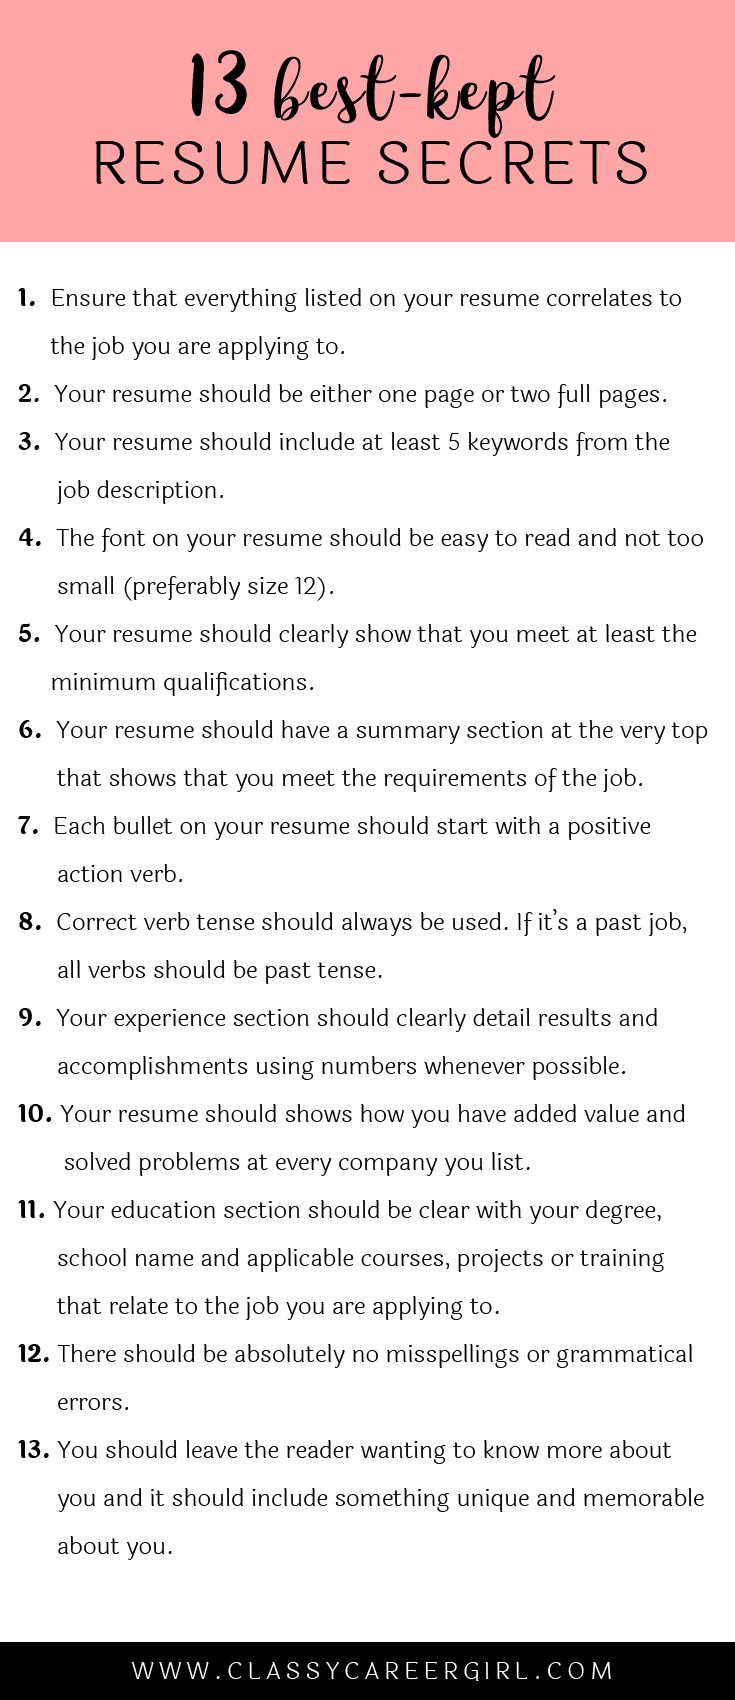 Opposenewapstandardsus  Mesmerizing  Ideas About Resume On Pinterest  Cv Format Resume Cv And  With Entrancing Some Hiring Managers Will Toss Your Resume Out If You Dont Know These  With Comely What Does A Resume Look Like For A Job Also Examples Of Resume Profiles In Addition Fraternity On Resume And User Experience Resume As Well As Retail Cashier Resume Additionally Computer Science Resume Sample From Pinterestcom With Opposenewapstandardsus  Entrancing  Ideas About Resume On Pinterest  Cv Format Resume Cv And  With Comely Some Hiring Managers Will Toss Your Resume Out If You Dont Know These  And Mesmerizing What Does A Resume Look Like For A Job Also Examples Of Resume Profiles In Addition Fraternity On Resume From Pinterestcom